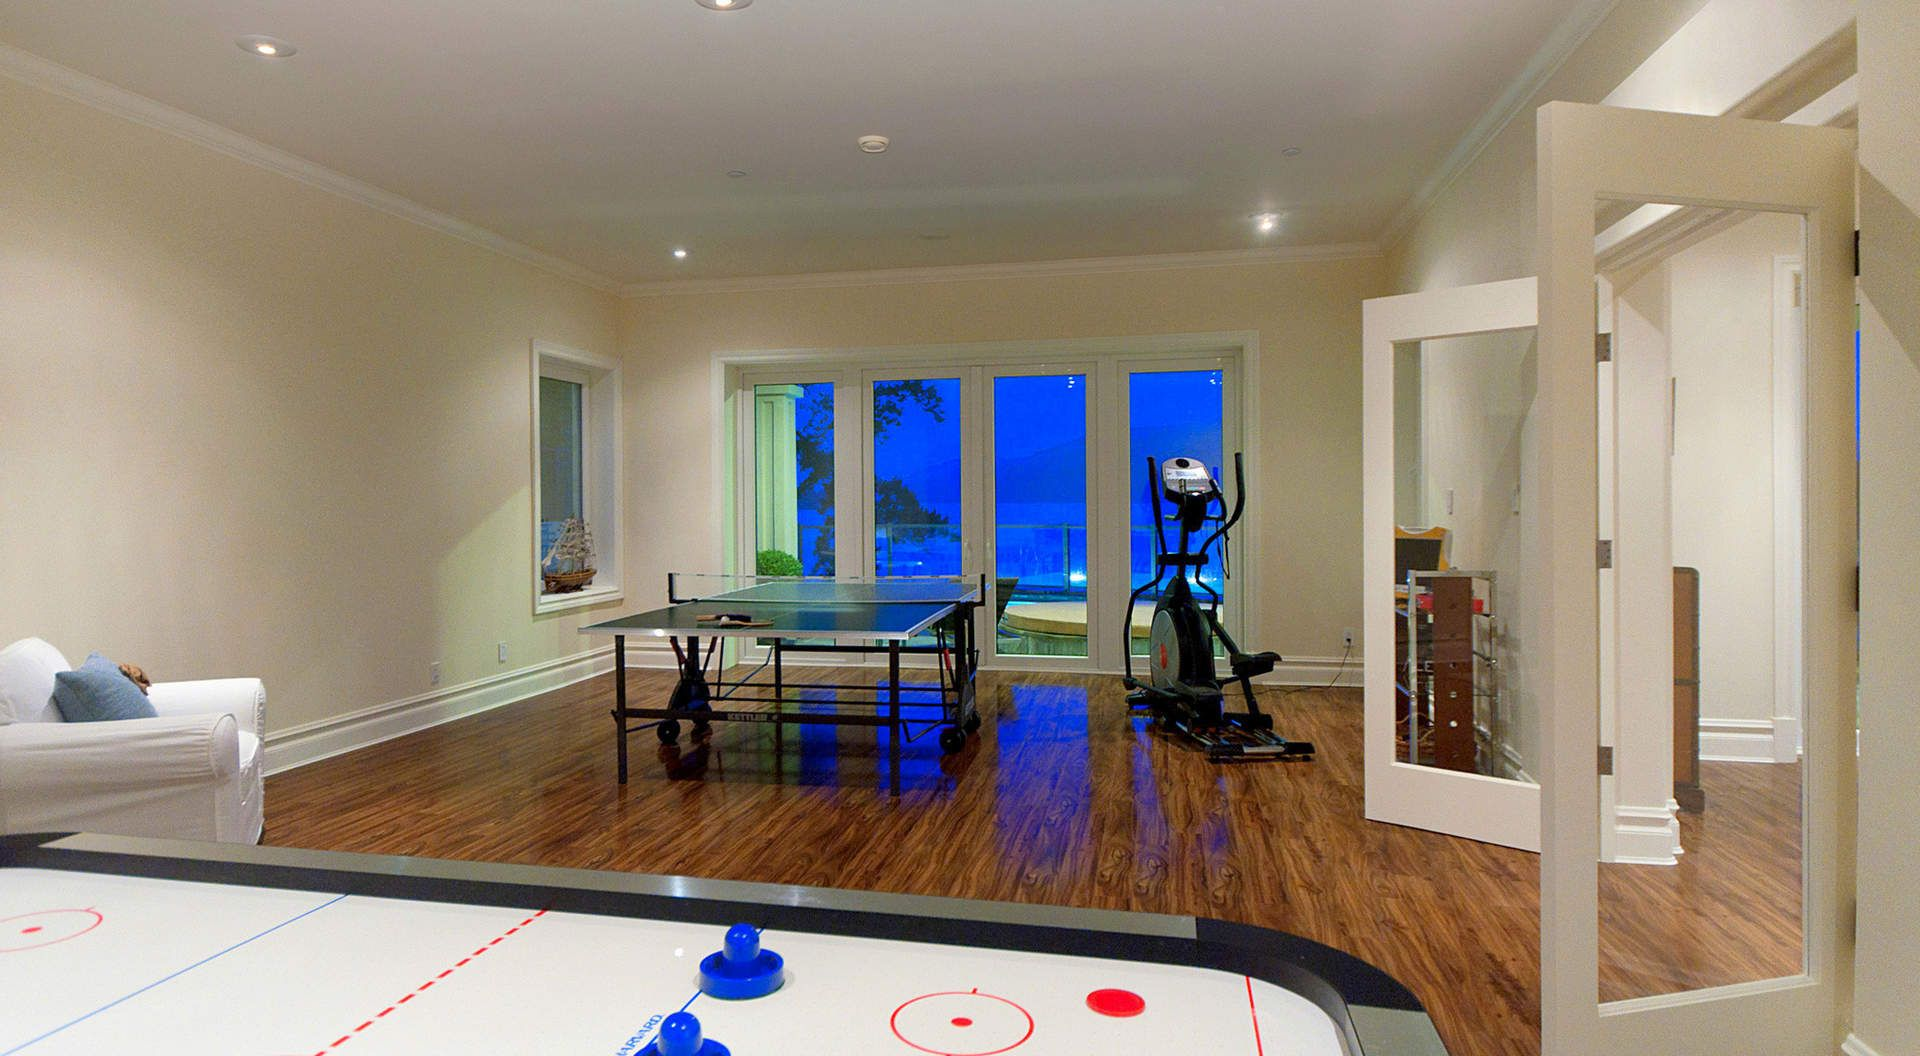 Basement remodeling ideas basement game room ideas - Basement game room ideas ...